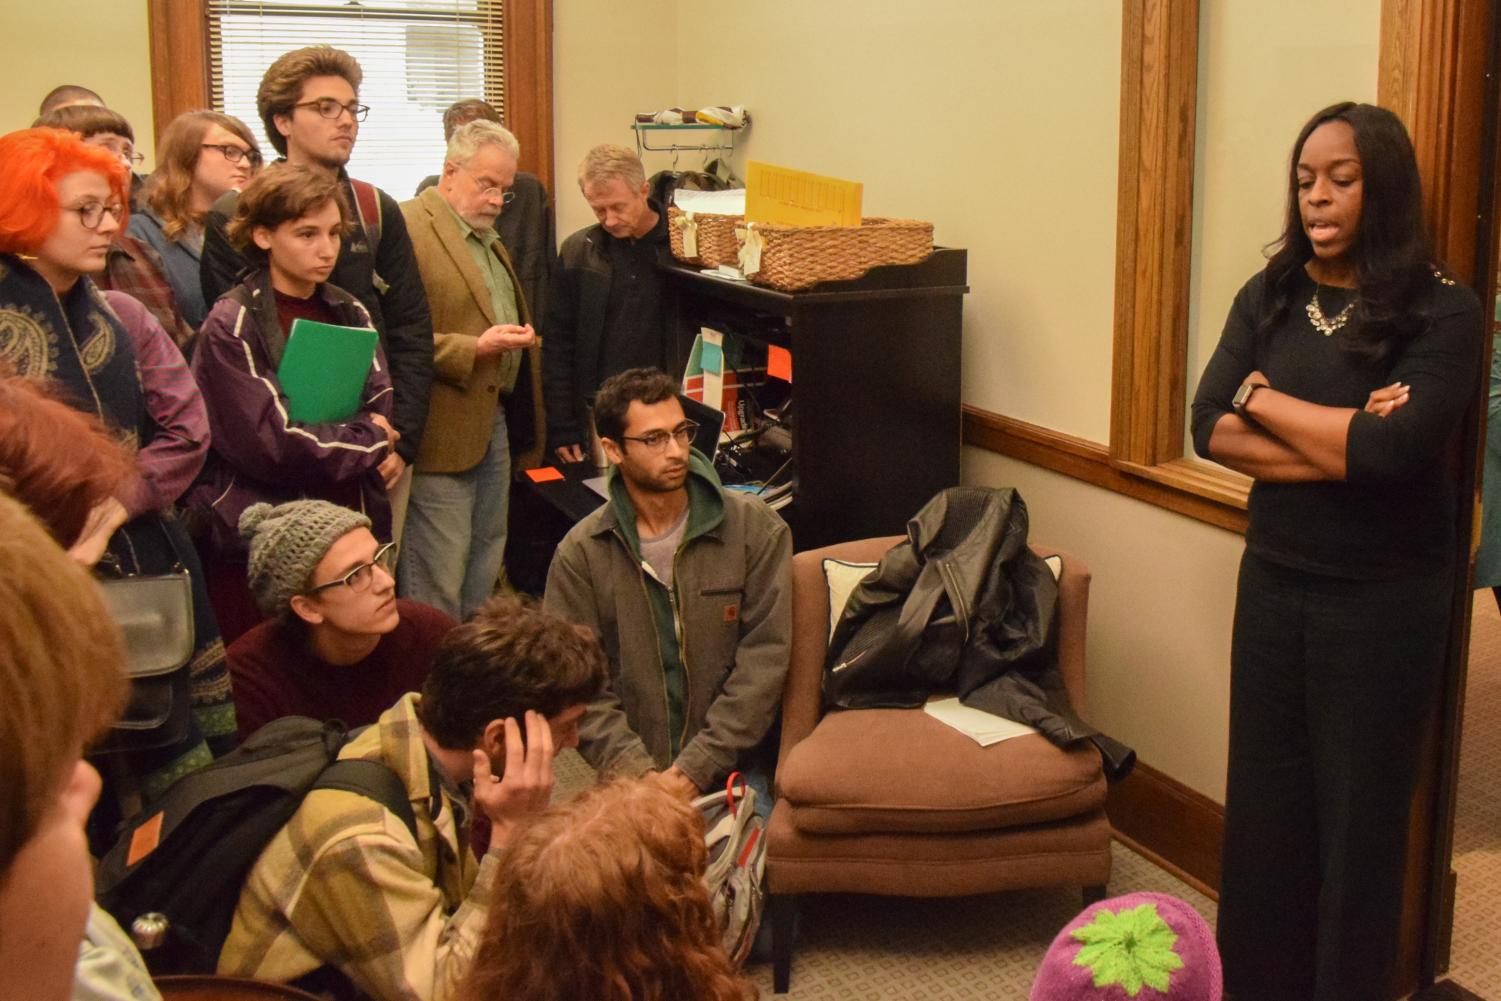 Demonstrators requesting Tom Reid's reinstatement confront President Ambar in her office.